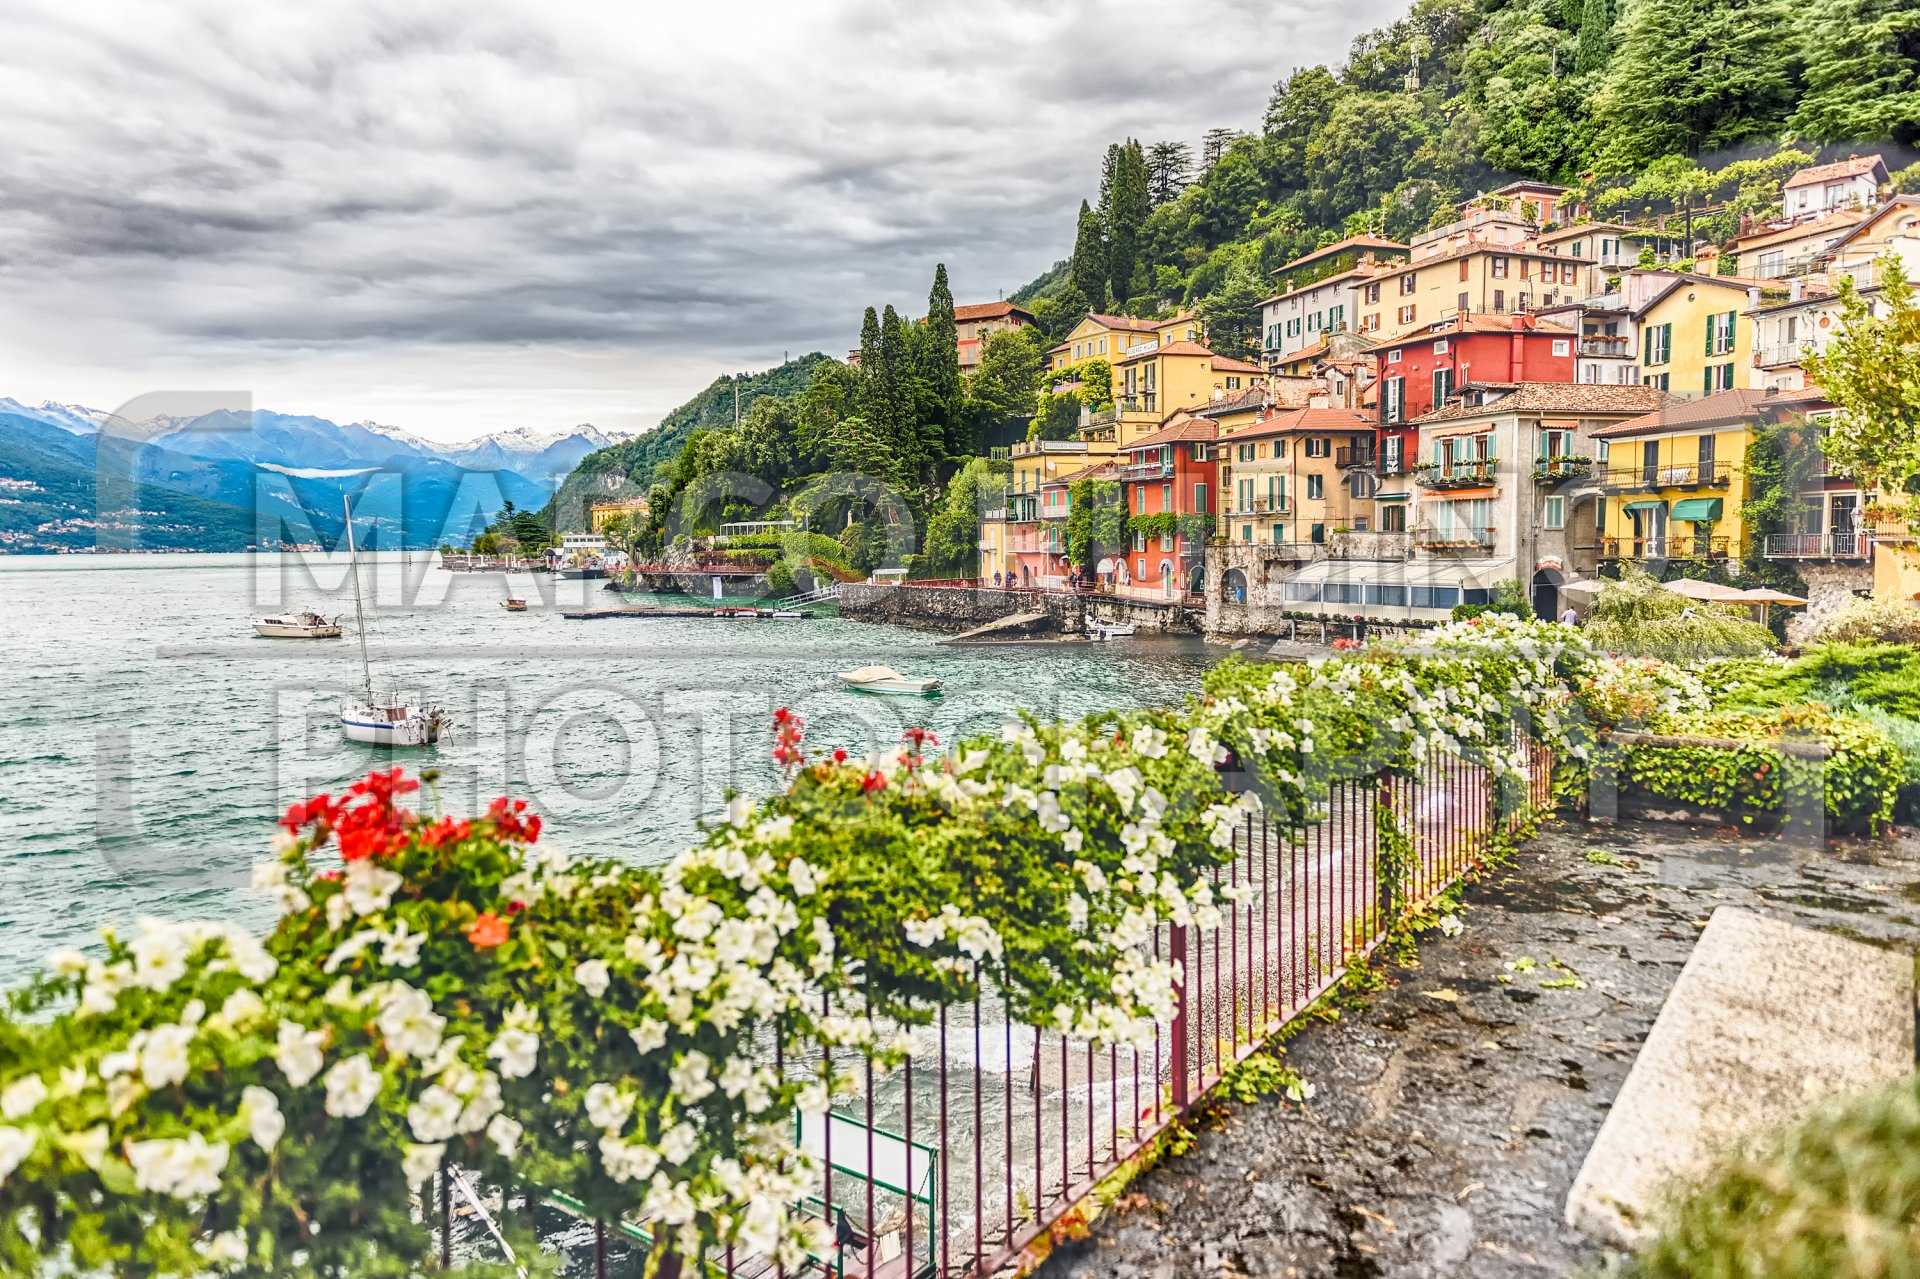 The picturesque village of Varenna over the Lake Como, Italy - Marco ...